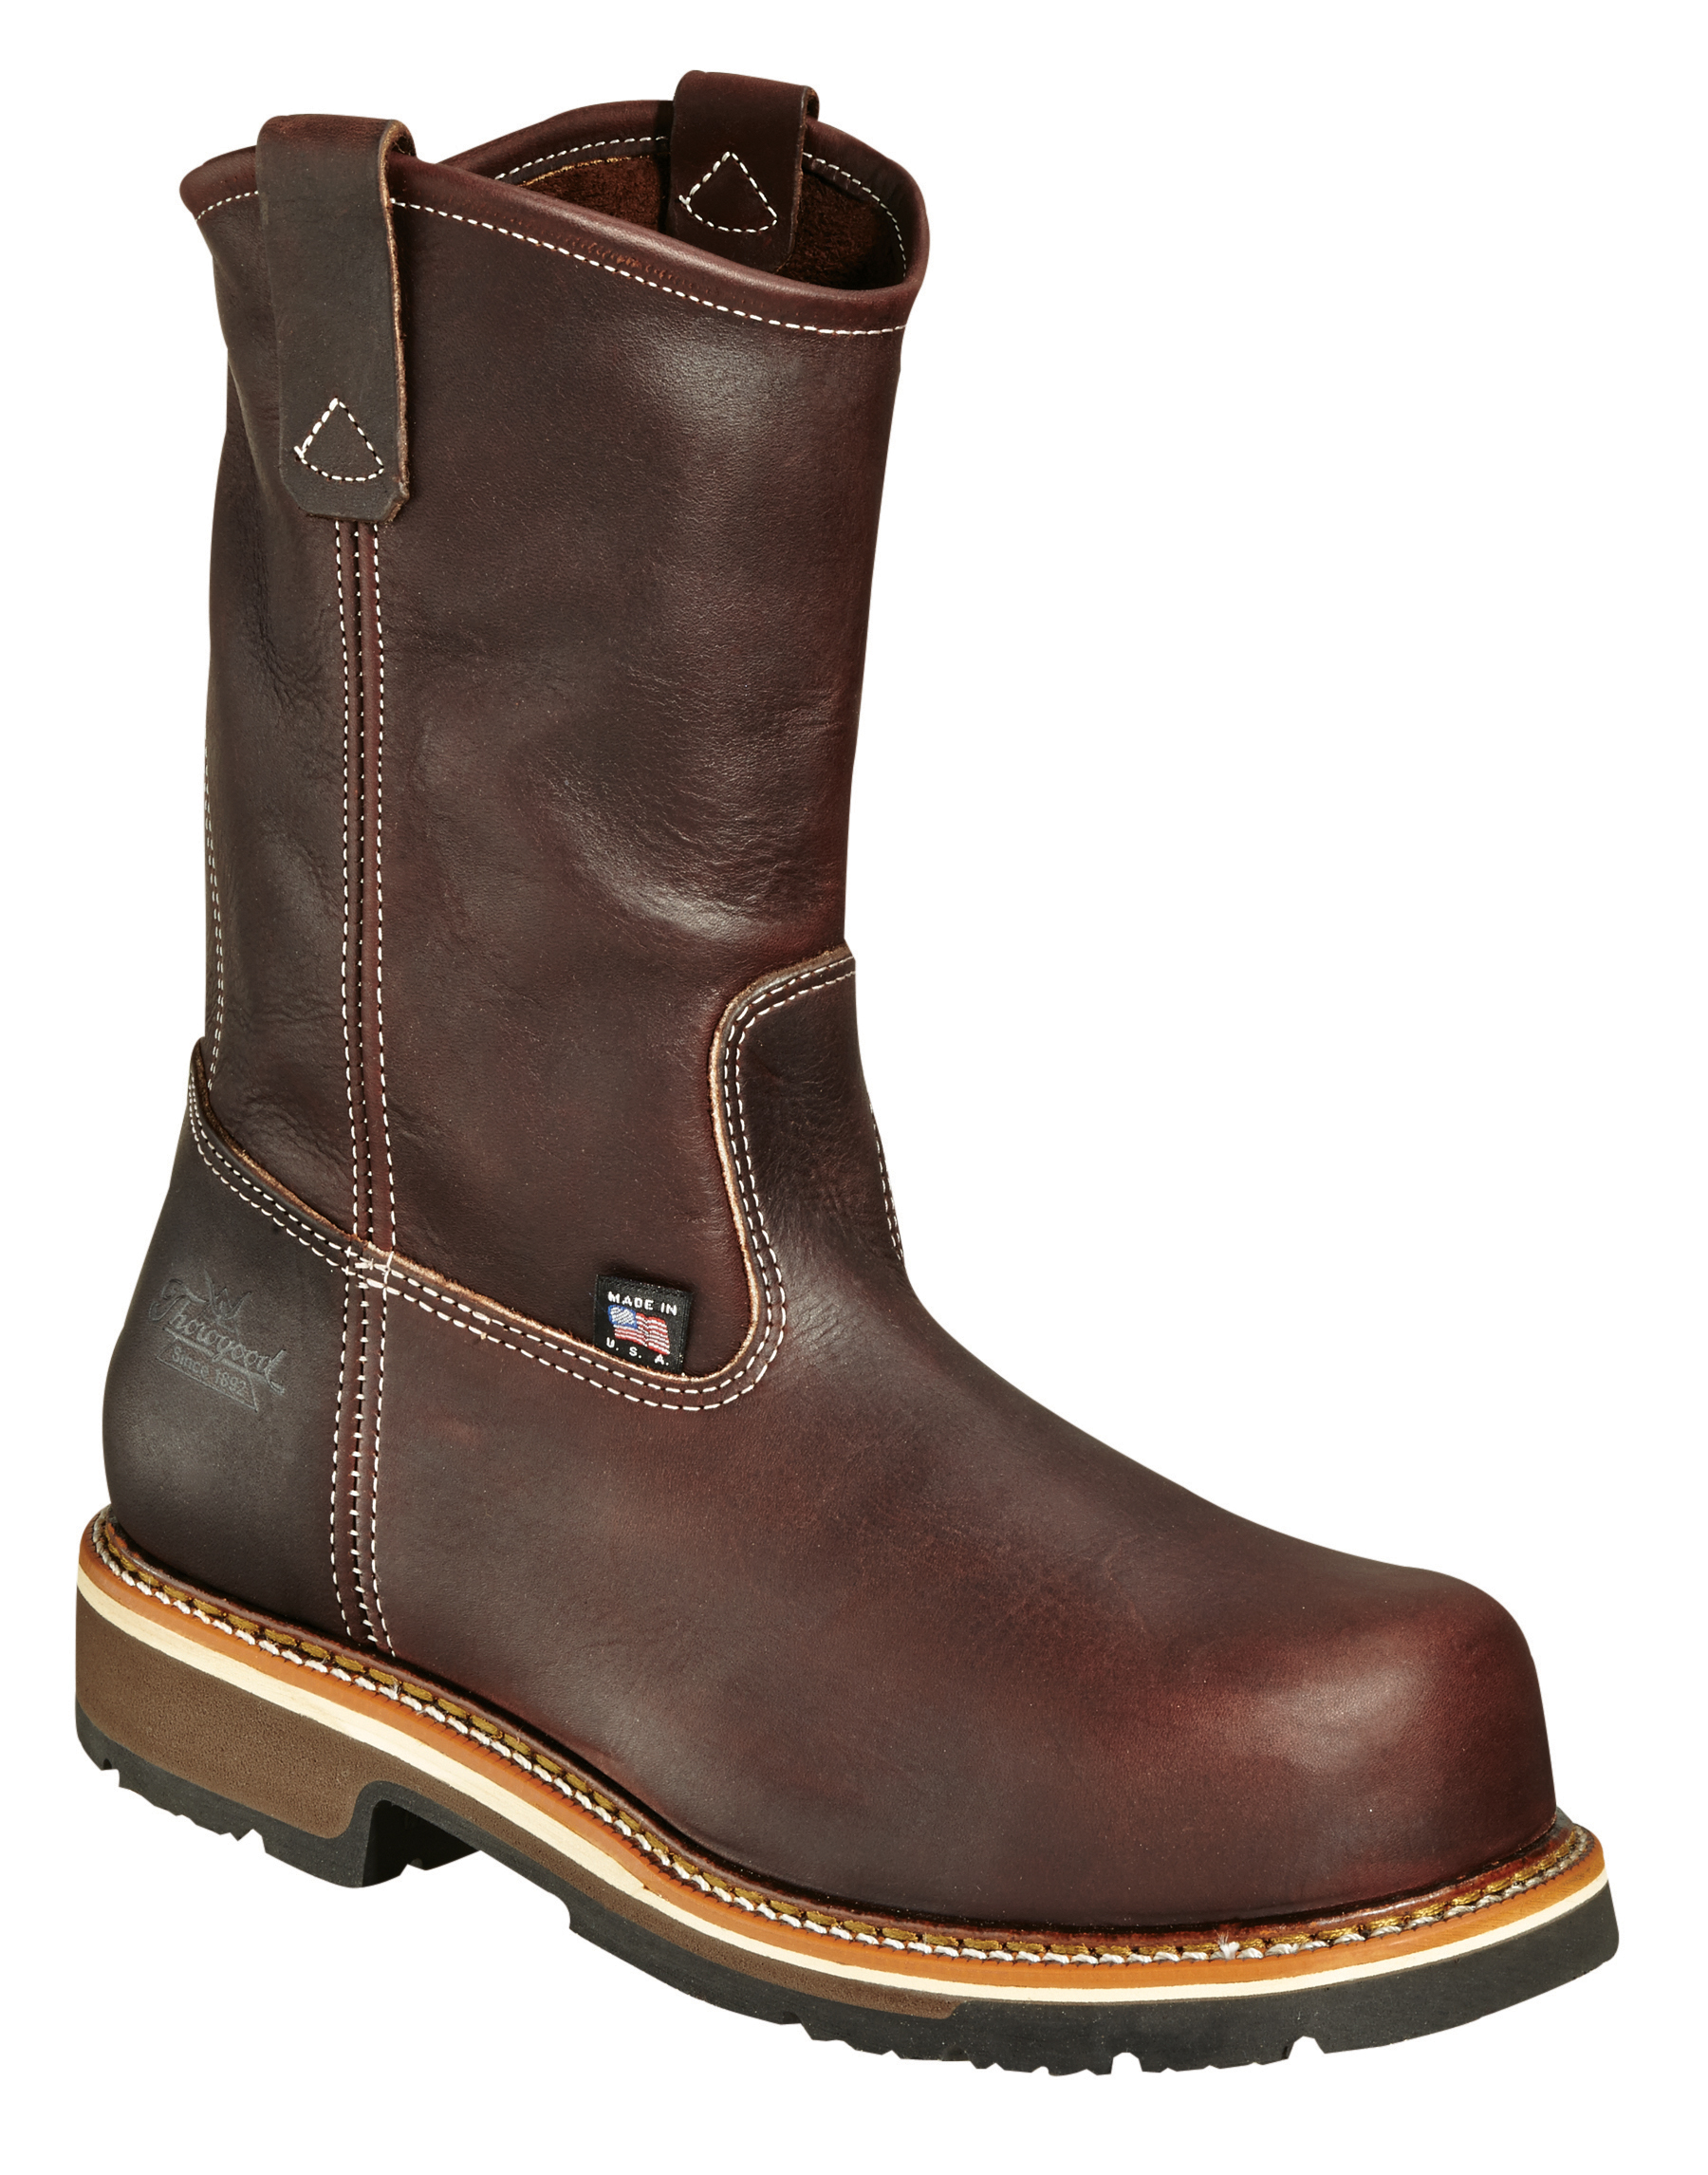 pull on thorogood s usa made boots 804 4369